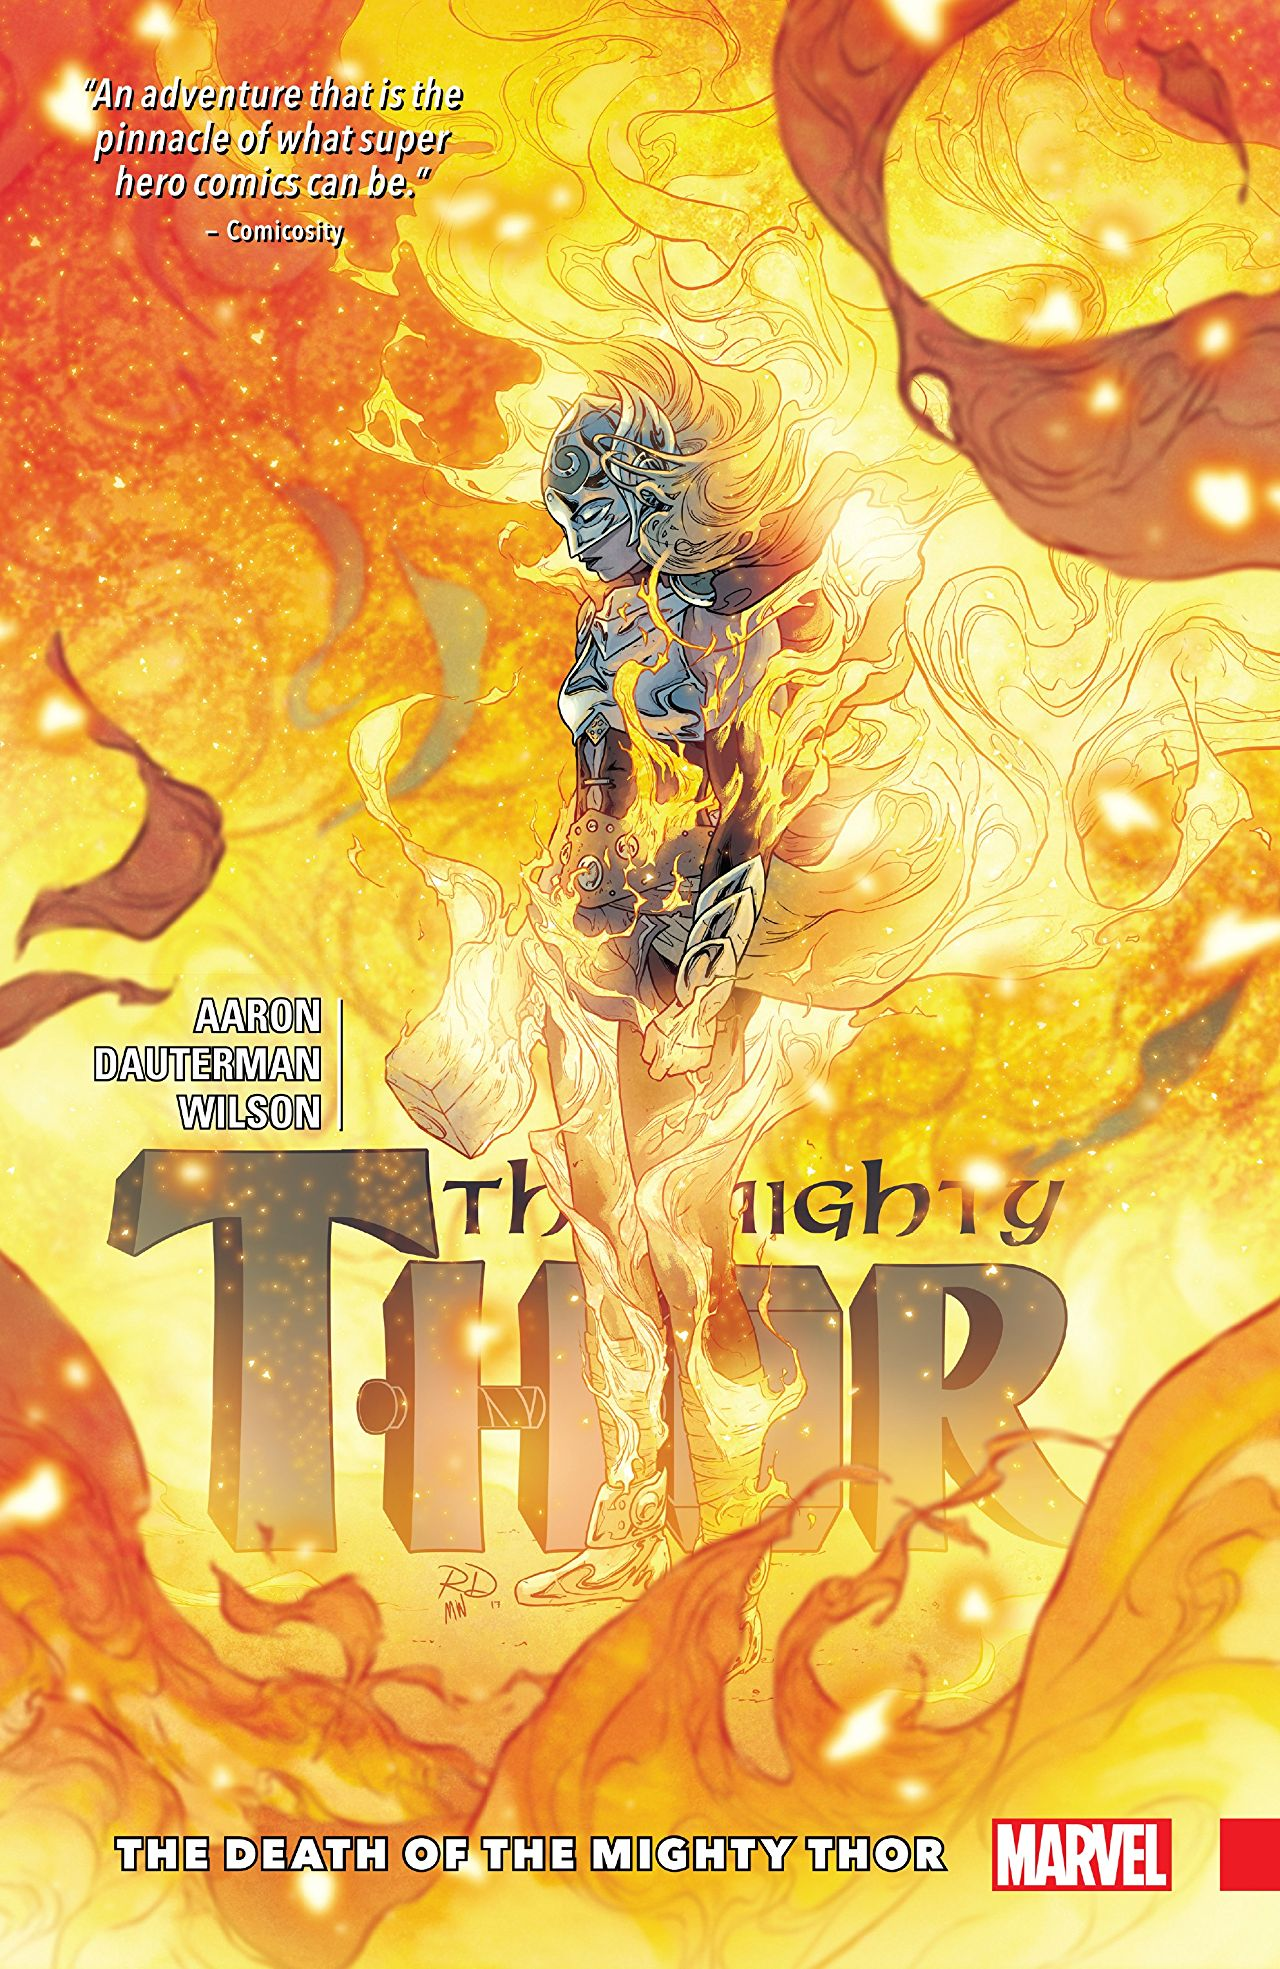 The Mighty Thor Volume 5: Death of the Mighty Thor review: Jane Foster proves herself more than worthy